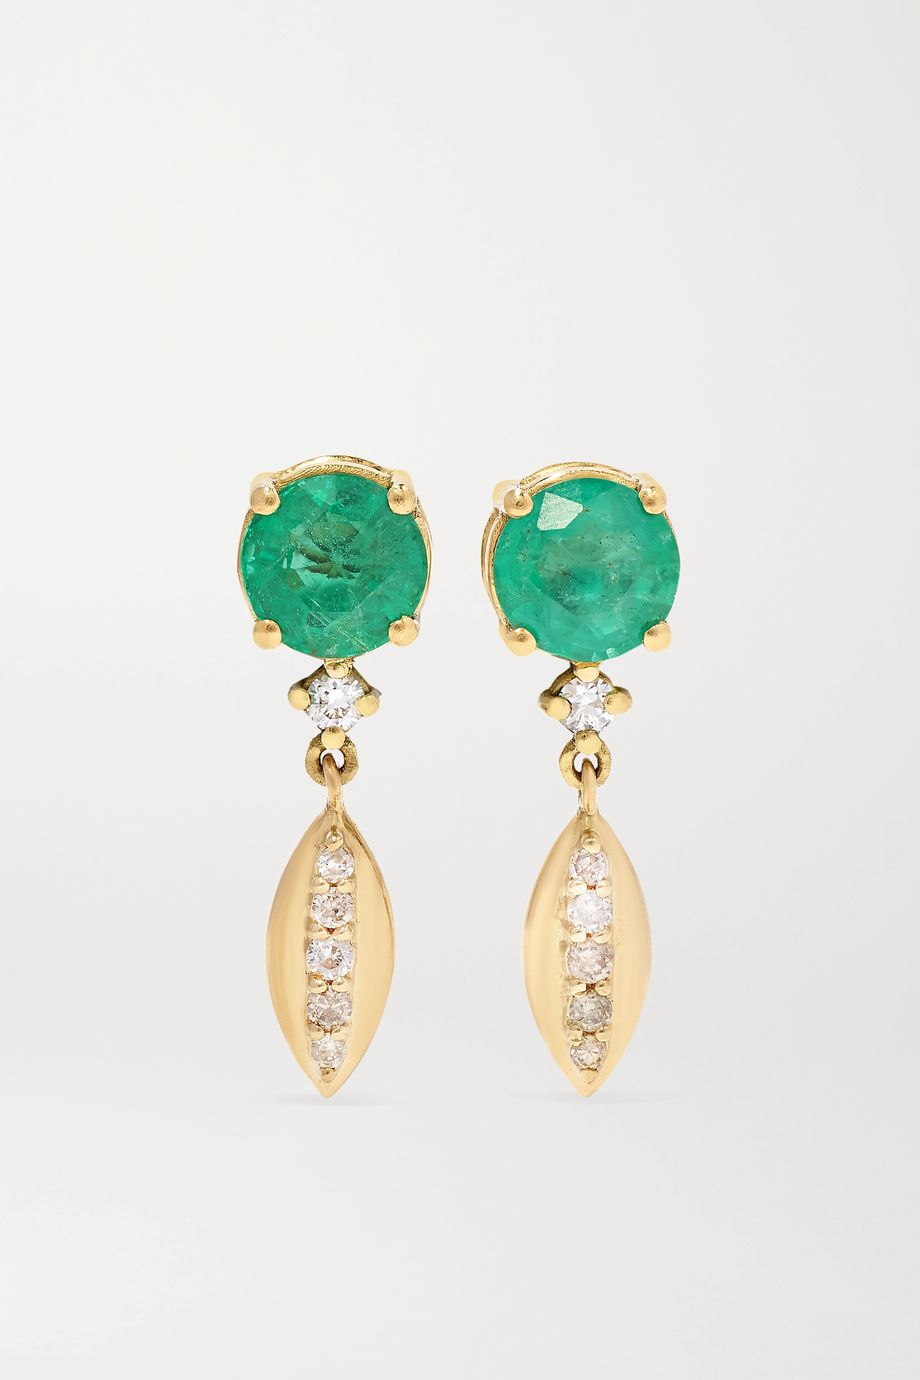 Ileana Makri Grass Single Dewdrop 18-karat gold, emerald and diamond earrings